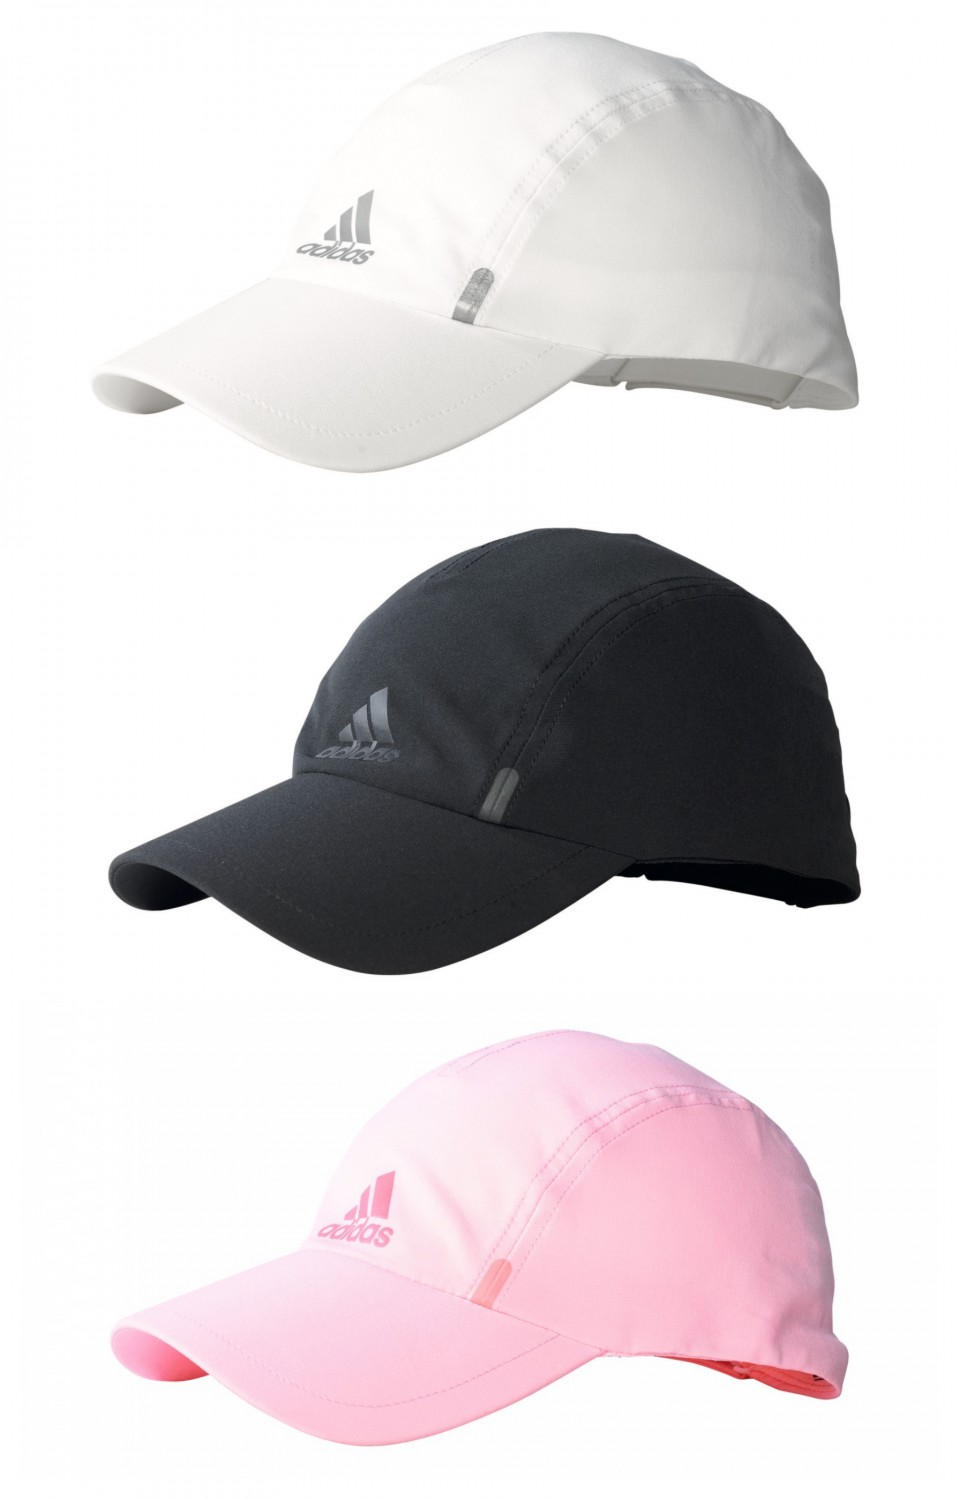 3fcd33c671a Adidas Performance Running Climalite Cap Baseball Cap Women Children ...